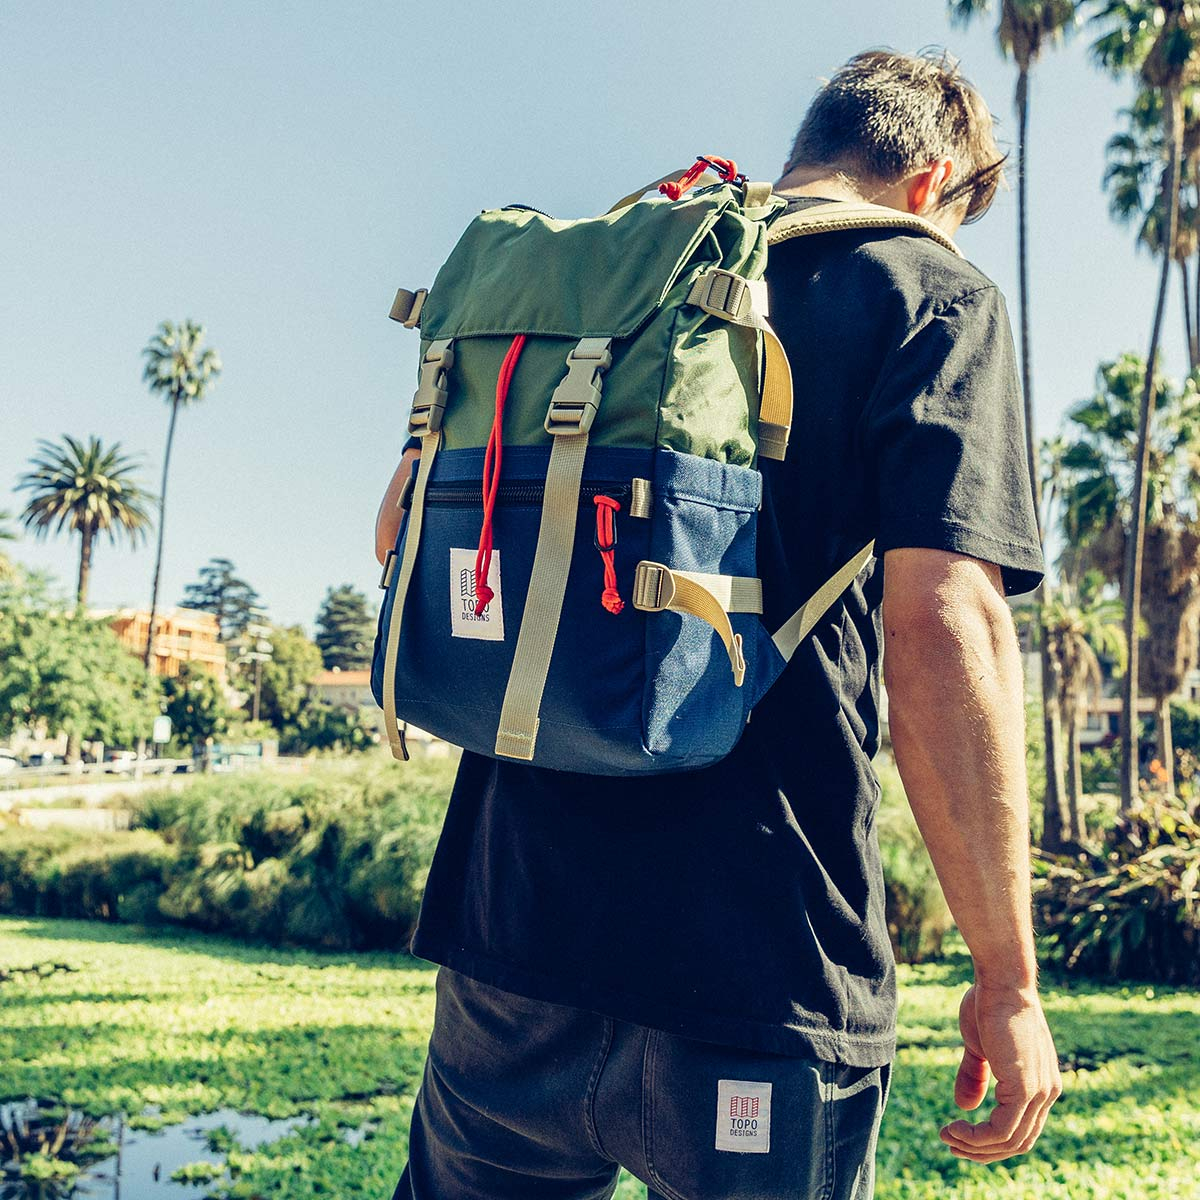 Topo Designs Rover Pack Classic Olive/Navy, durable, lightweight and water-resistant pack for daily use